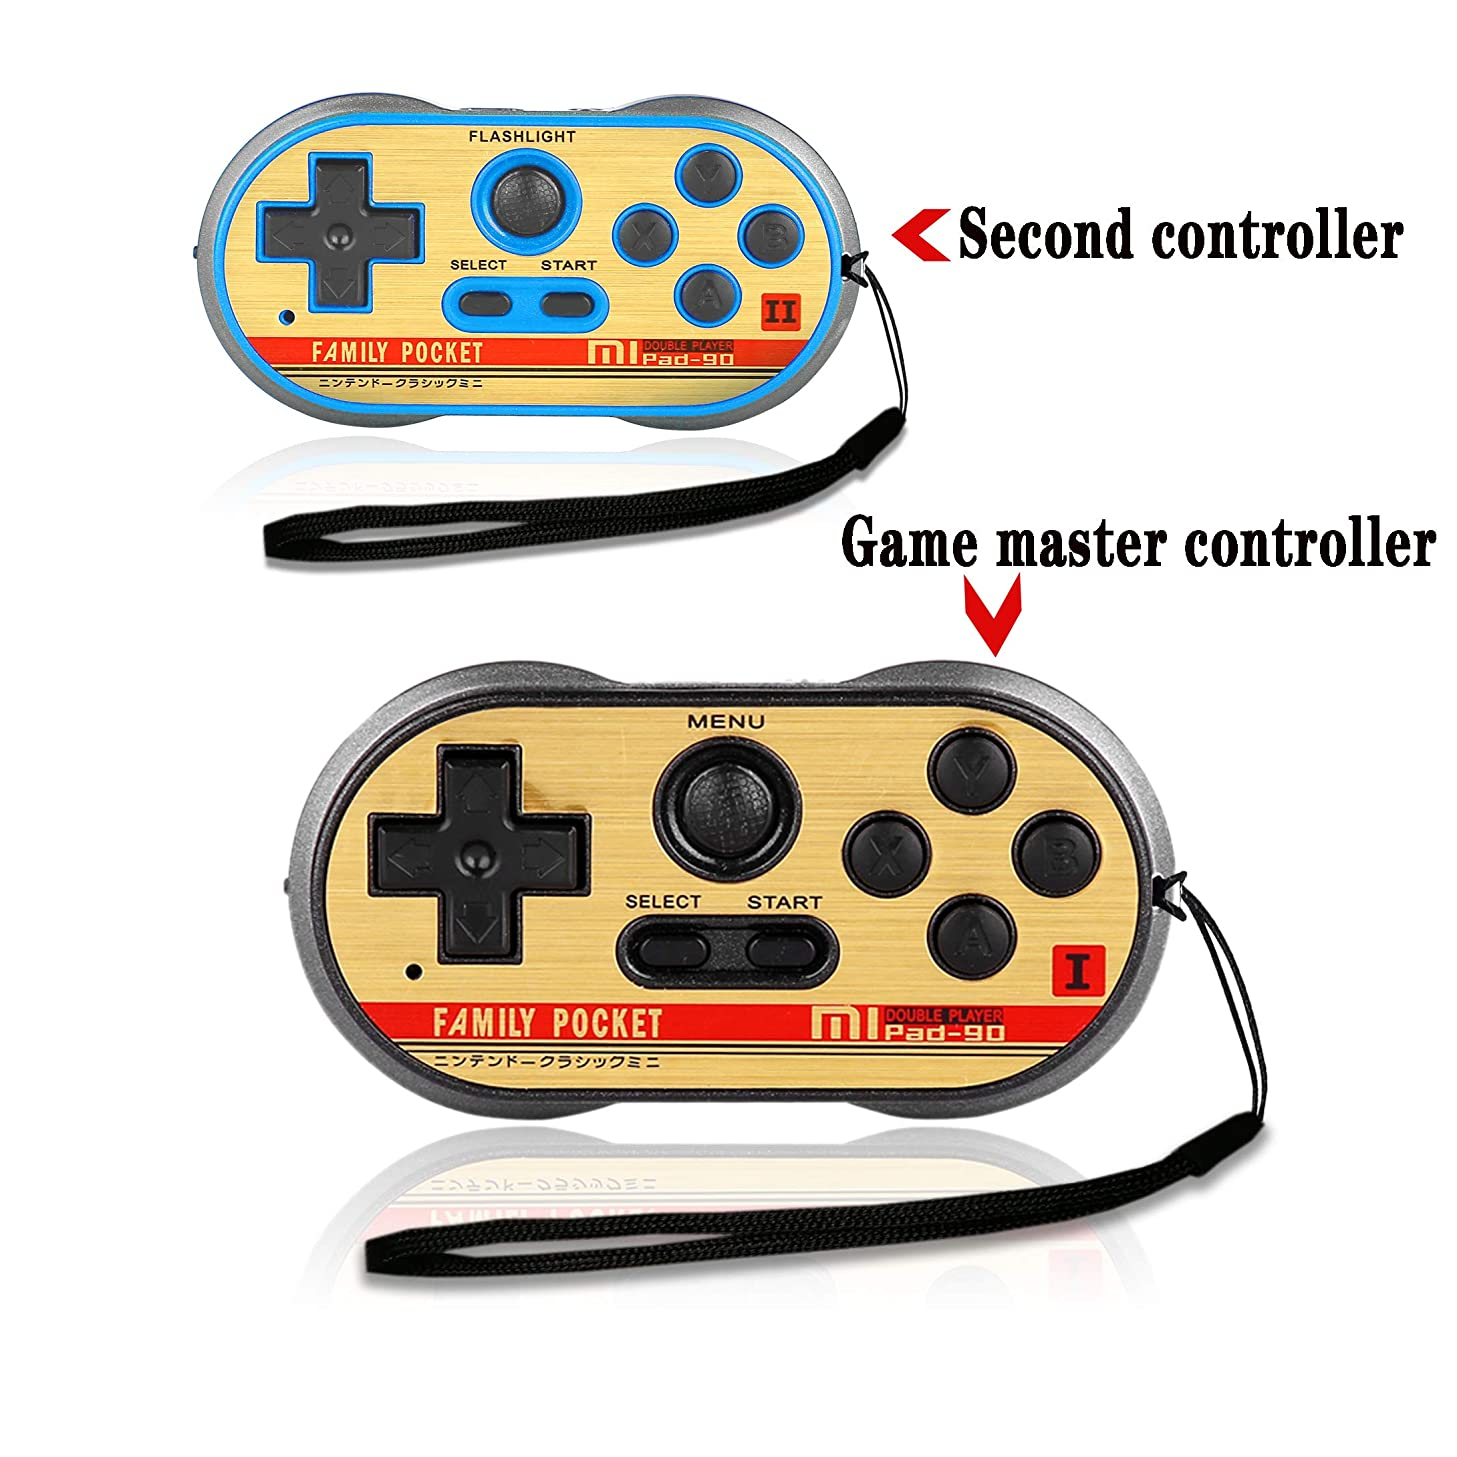 FAMILY POCKET Handheld Game Player Dual Joystick Game Entertainment, NES Classic Mini Game Console, 260 Video Games, Birthday and Children's Gifts